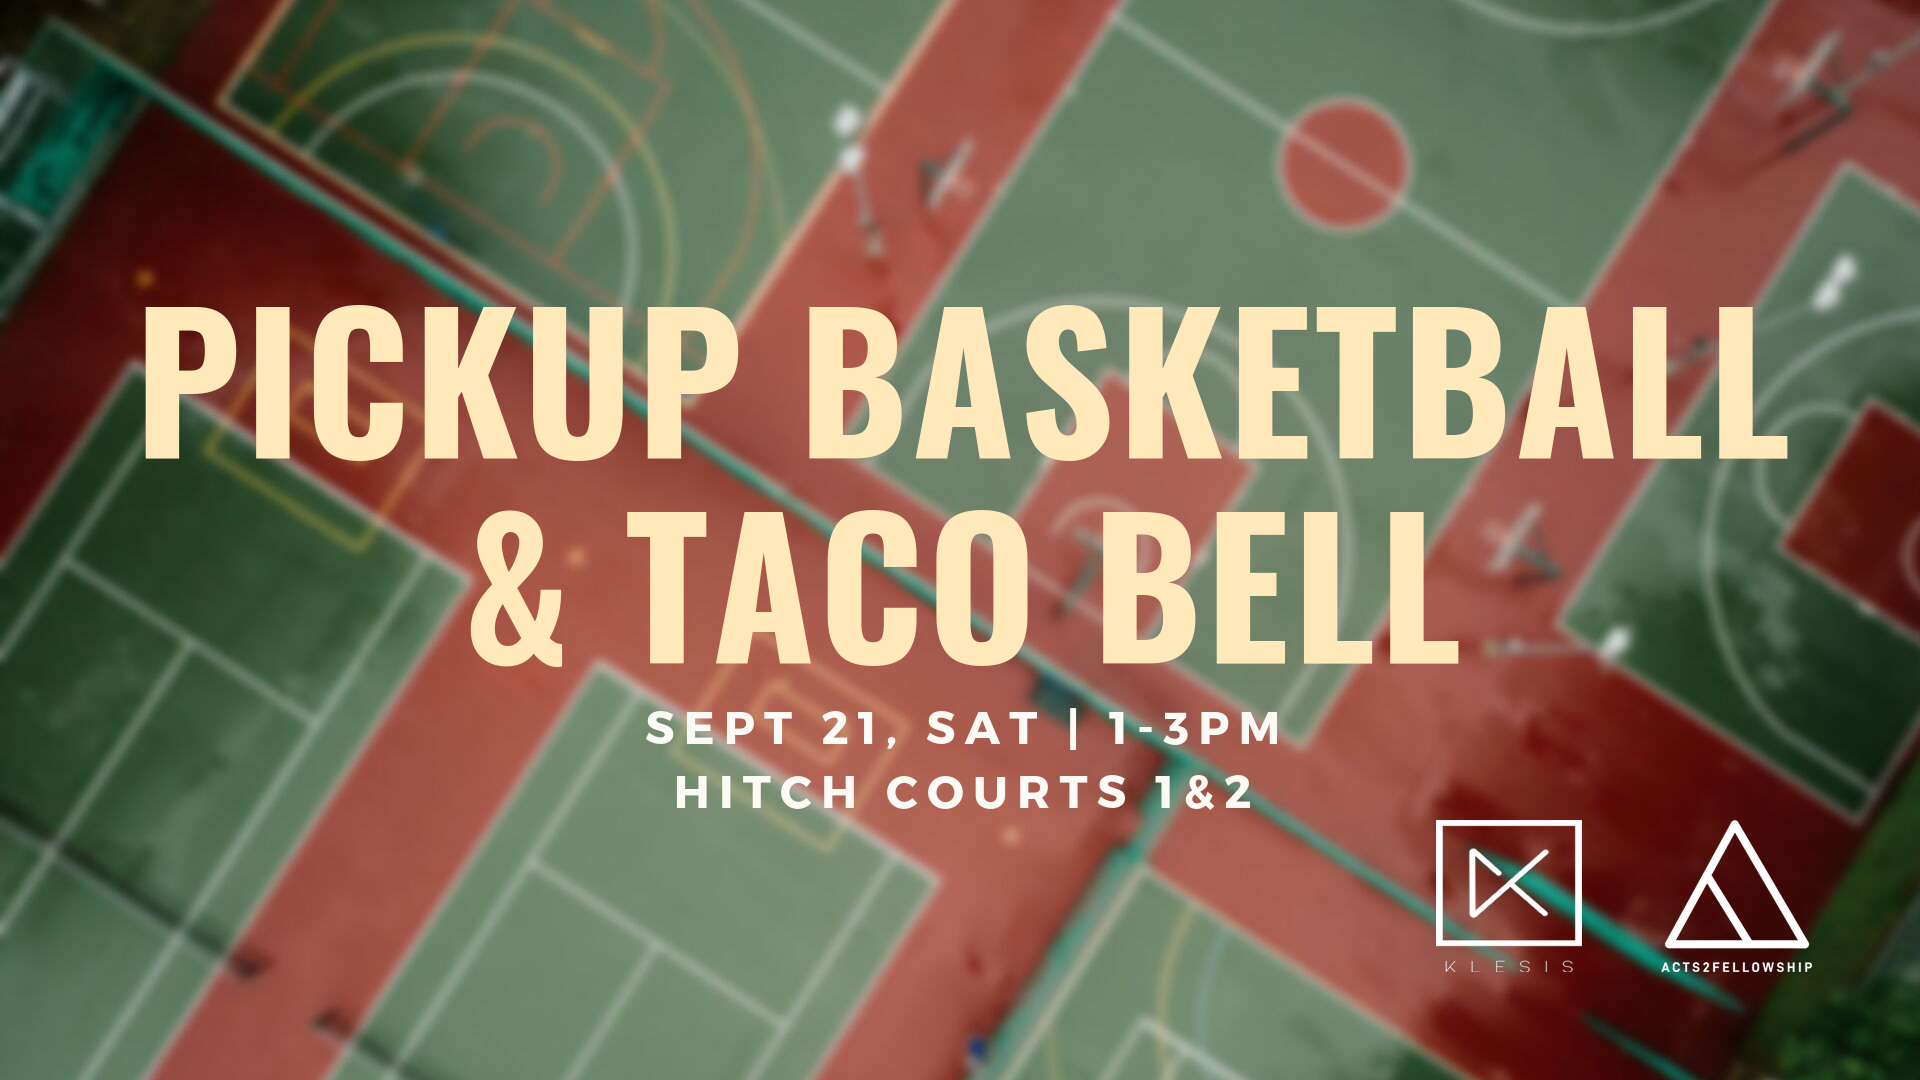 Basketball & Taco Bell(1).png